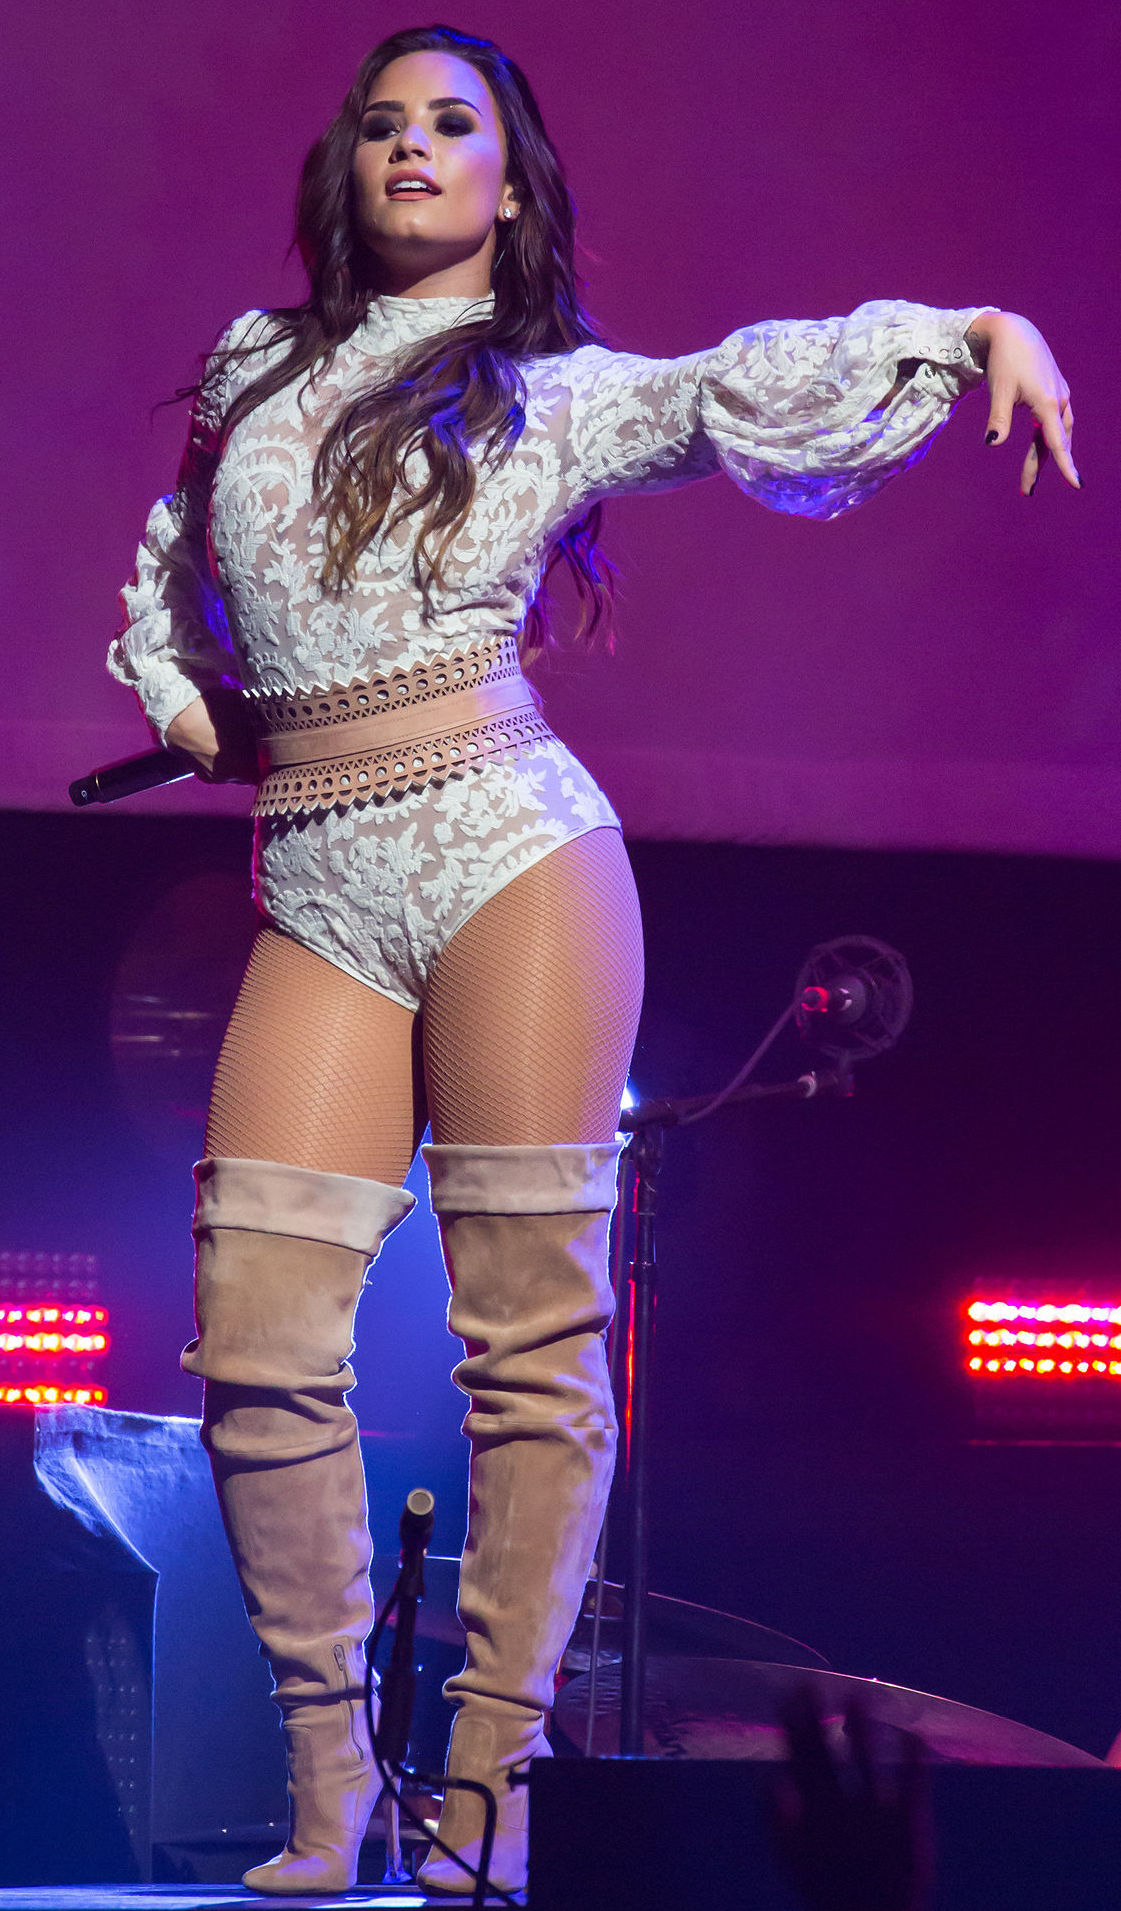 Watch Demi Lovato Gets Her Ass Felt Up On Stage video